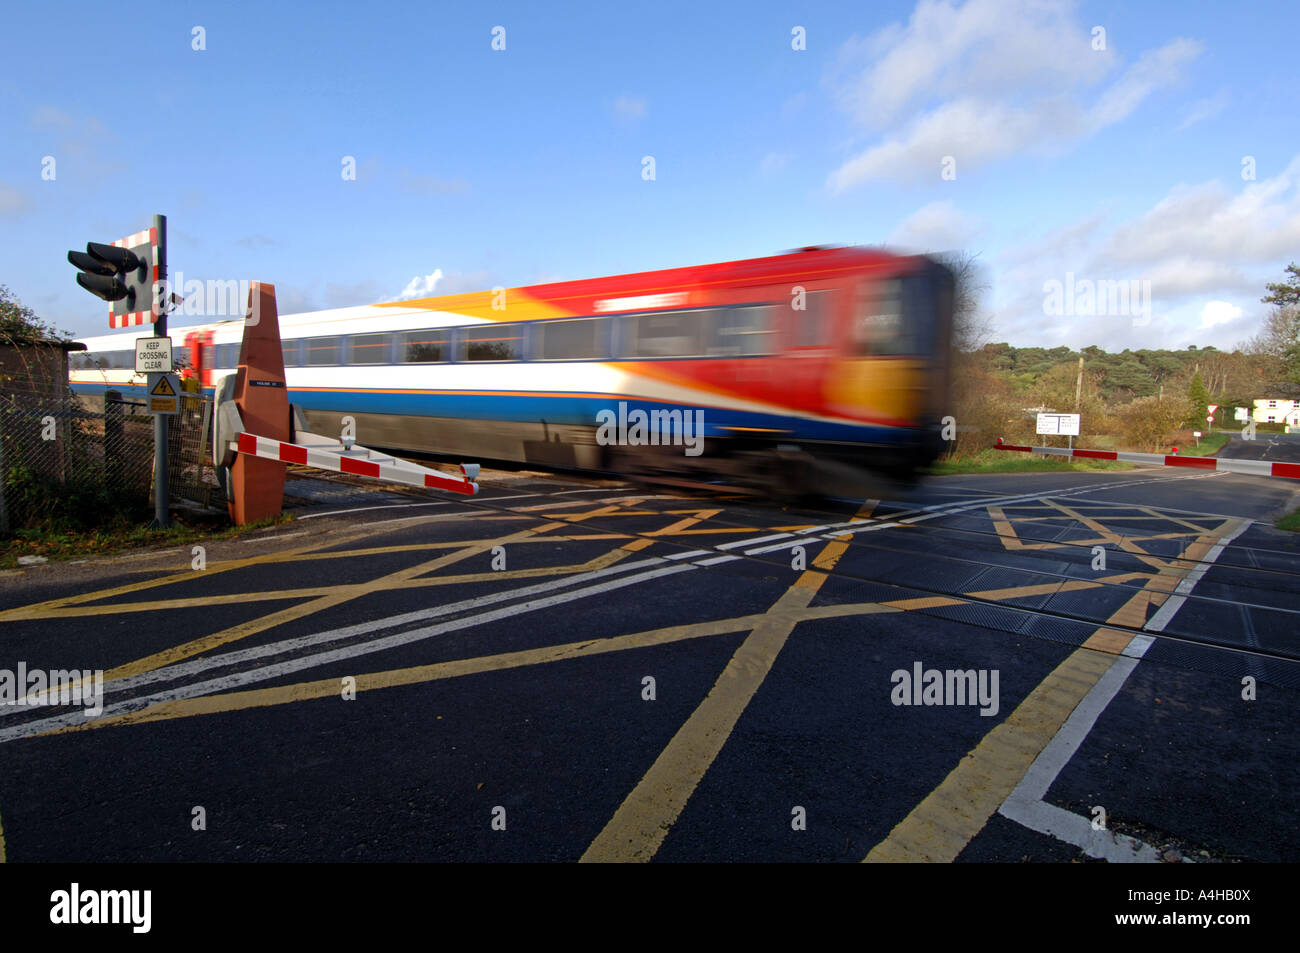 """Level crossing"" train crossing a level crossing, Britain UK - Stock Image"